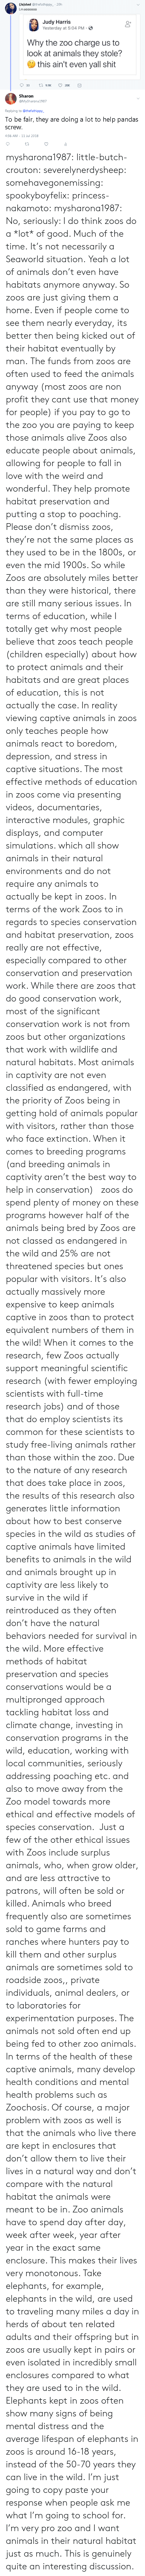 Alive, Animals, and Children: (Ja)ded @thefathippy 20h  maooo000  Judy Harris  Yesterday at 5:04 PM.  0+  Why the zoo charge us to  look at animals they stole?  this ain't even yall shit  Sharon  @MySharona1987  Replying to @thefathippy  To be fair, they are doing a lot to help pandas  screw.  4:56 AM- 11 Jul 2018 mysharona1987:  little-butch-crouton: severelynerdysheep:  somehavegonemissing:  spookyboyfelix:  princess-nakamoto:   mysharona1987:   No, seriously: I do think zoos do a *lot* of good. Much of the time. It's not necessarily a Seaworld situation.   Yeah a lot of animals don't even have habitats anymore anyway. So zoos are just giving them a home. Even if people come to see them nearly everyday, its better then being kicked out of their habitat eventually by man.   The funds from zoos are often used to feed the animals anyway (most zoos are non profit they cant use that money for people) if you pay to go to the zoo you are paying to keep those animals alive  Zoos also educate people about animals, allowing for people to fall in love with the weird and wonderful.  They help promote habitat preservation and putting a stop to poaching. Please don't dismiss zoos, they're not the same places as they used to be in the 1800s, or even the mid 1900s.   So while Zoos are absolutely miles better than they were historical, there are still many serious issues. In terms of education, while I totally get why most people believe that zoos teach people (children especially) about how to protect animals and their habitats and are great places of education, this is not actually the case. In reality viewing captive animals in zoos only teaches people how animals react to boredom, depression, and stress in captive situations. The most effective methods of education in zoos come via presenting videos, documentaries, interactive modules, graphic displays, and computer simulations. which all show animals in their natural environments and do not require any animals to actuallybe k